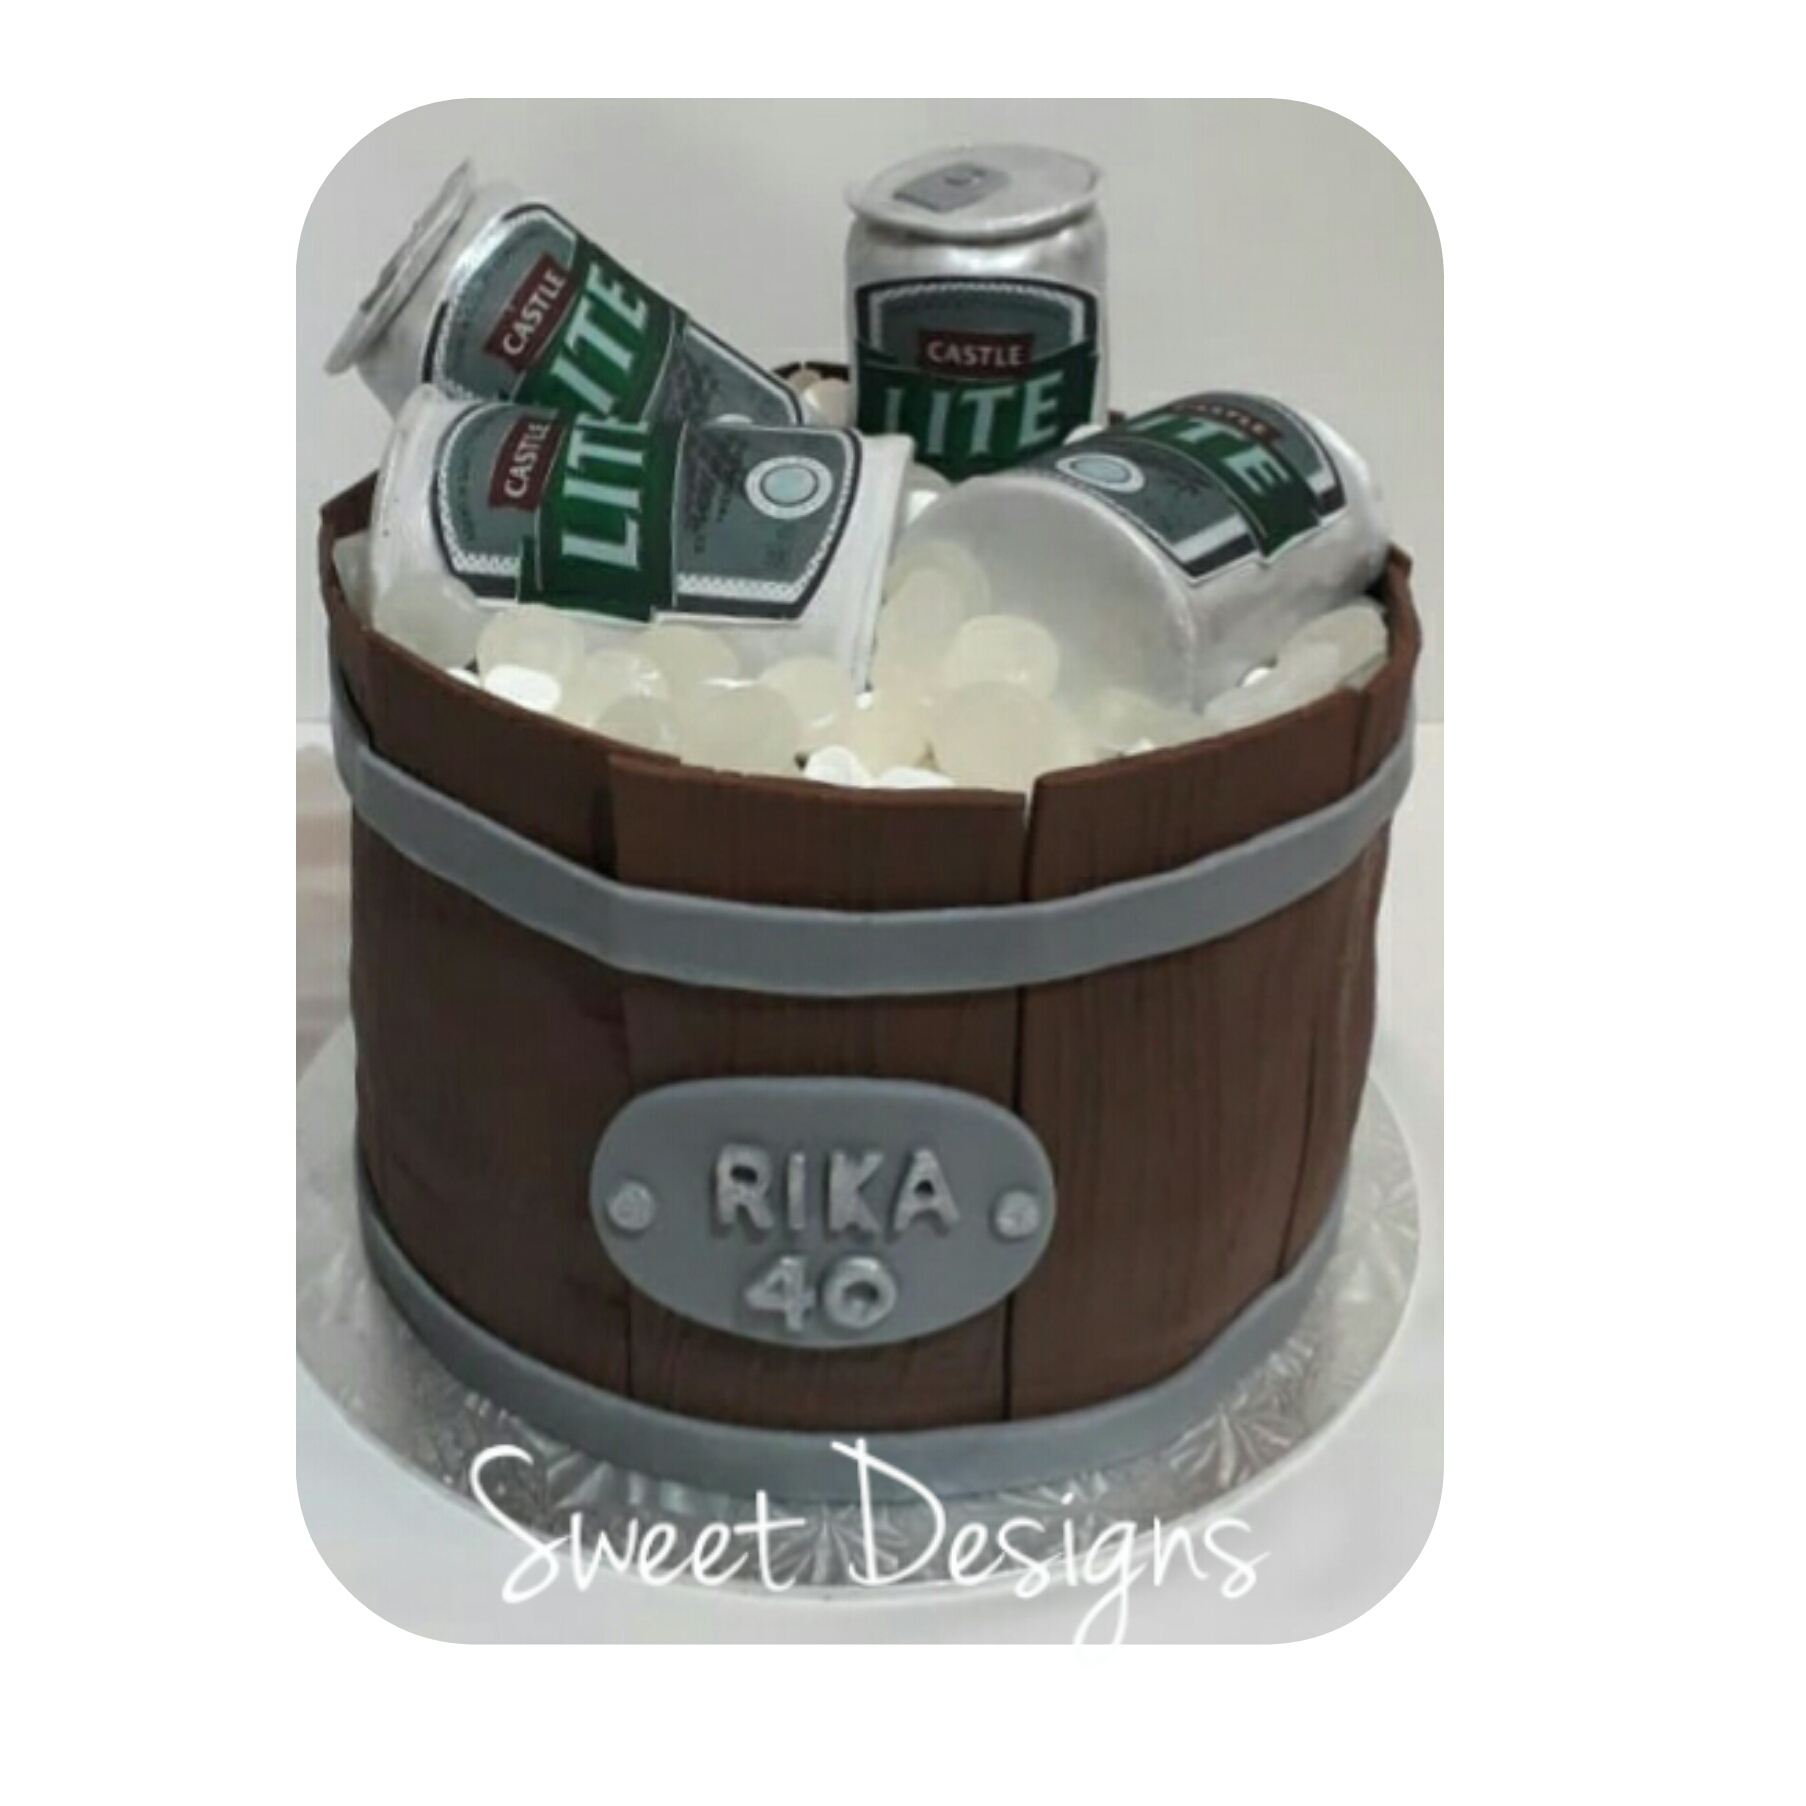 Barrel Cake with Cake Beer cans